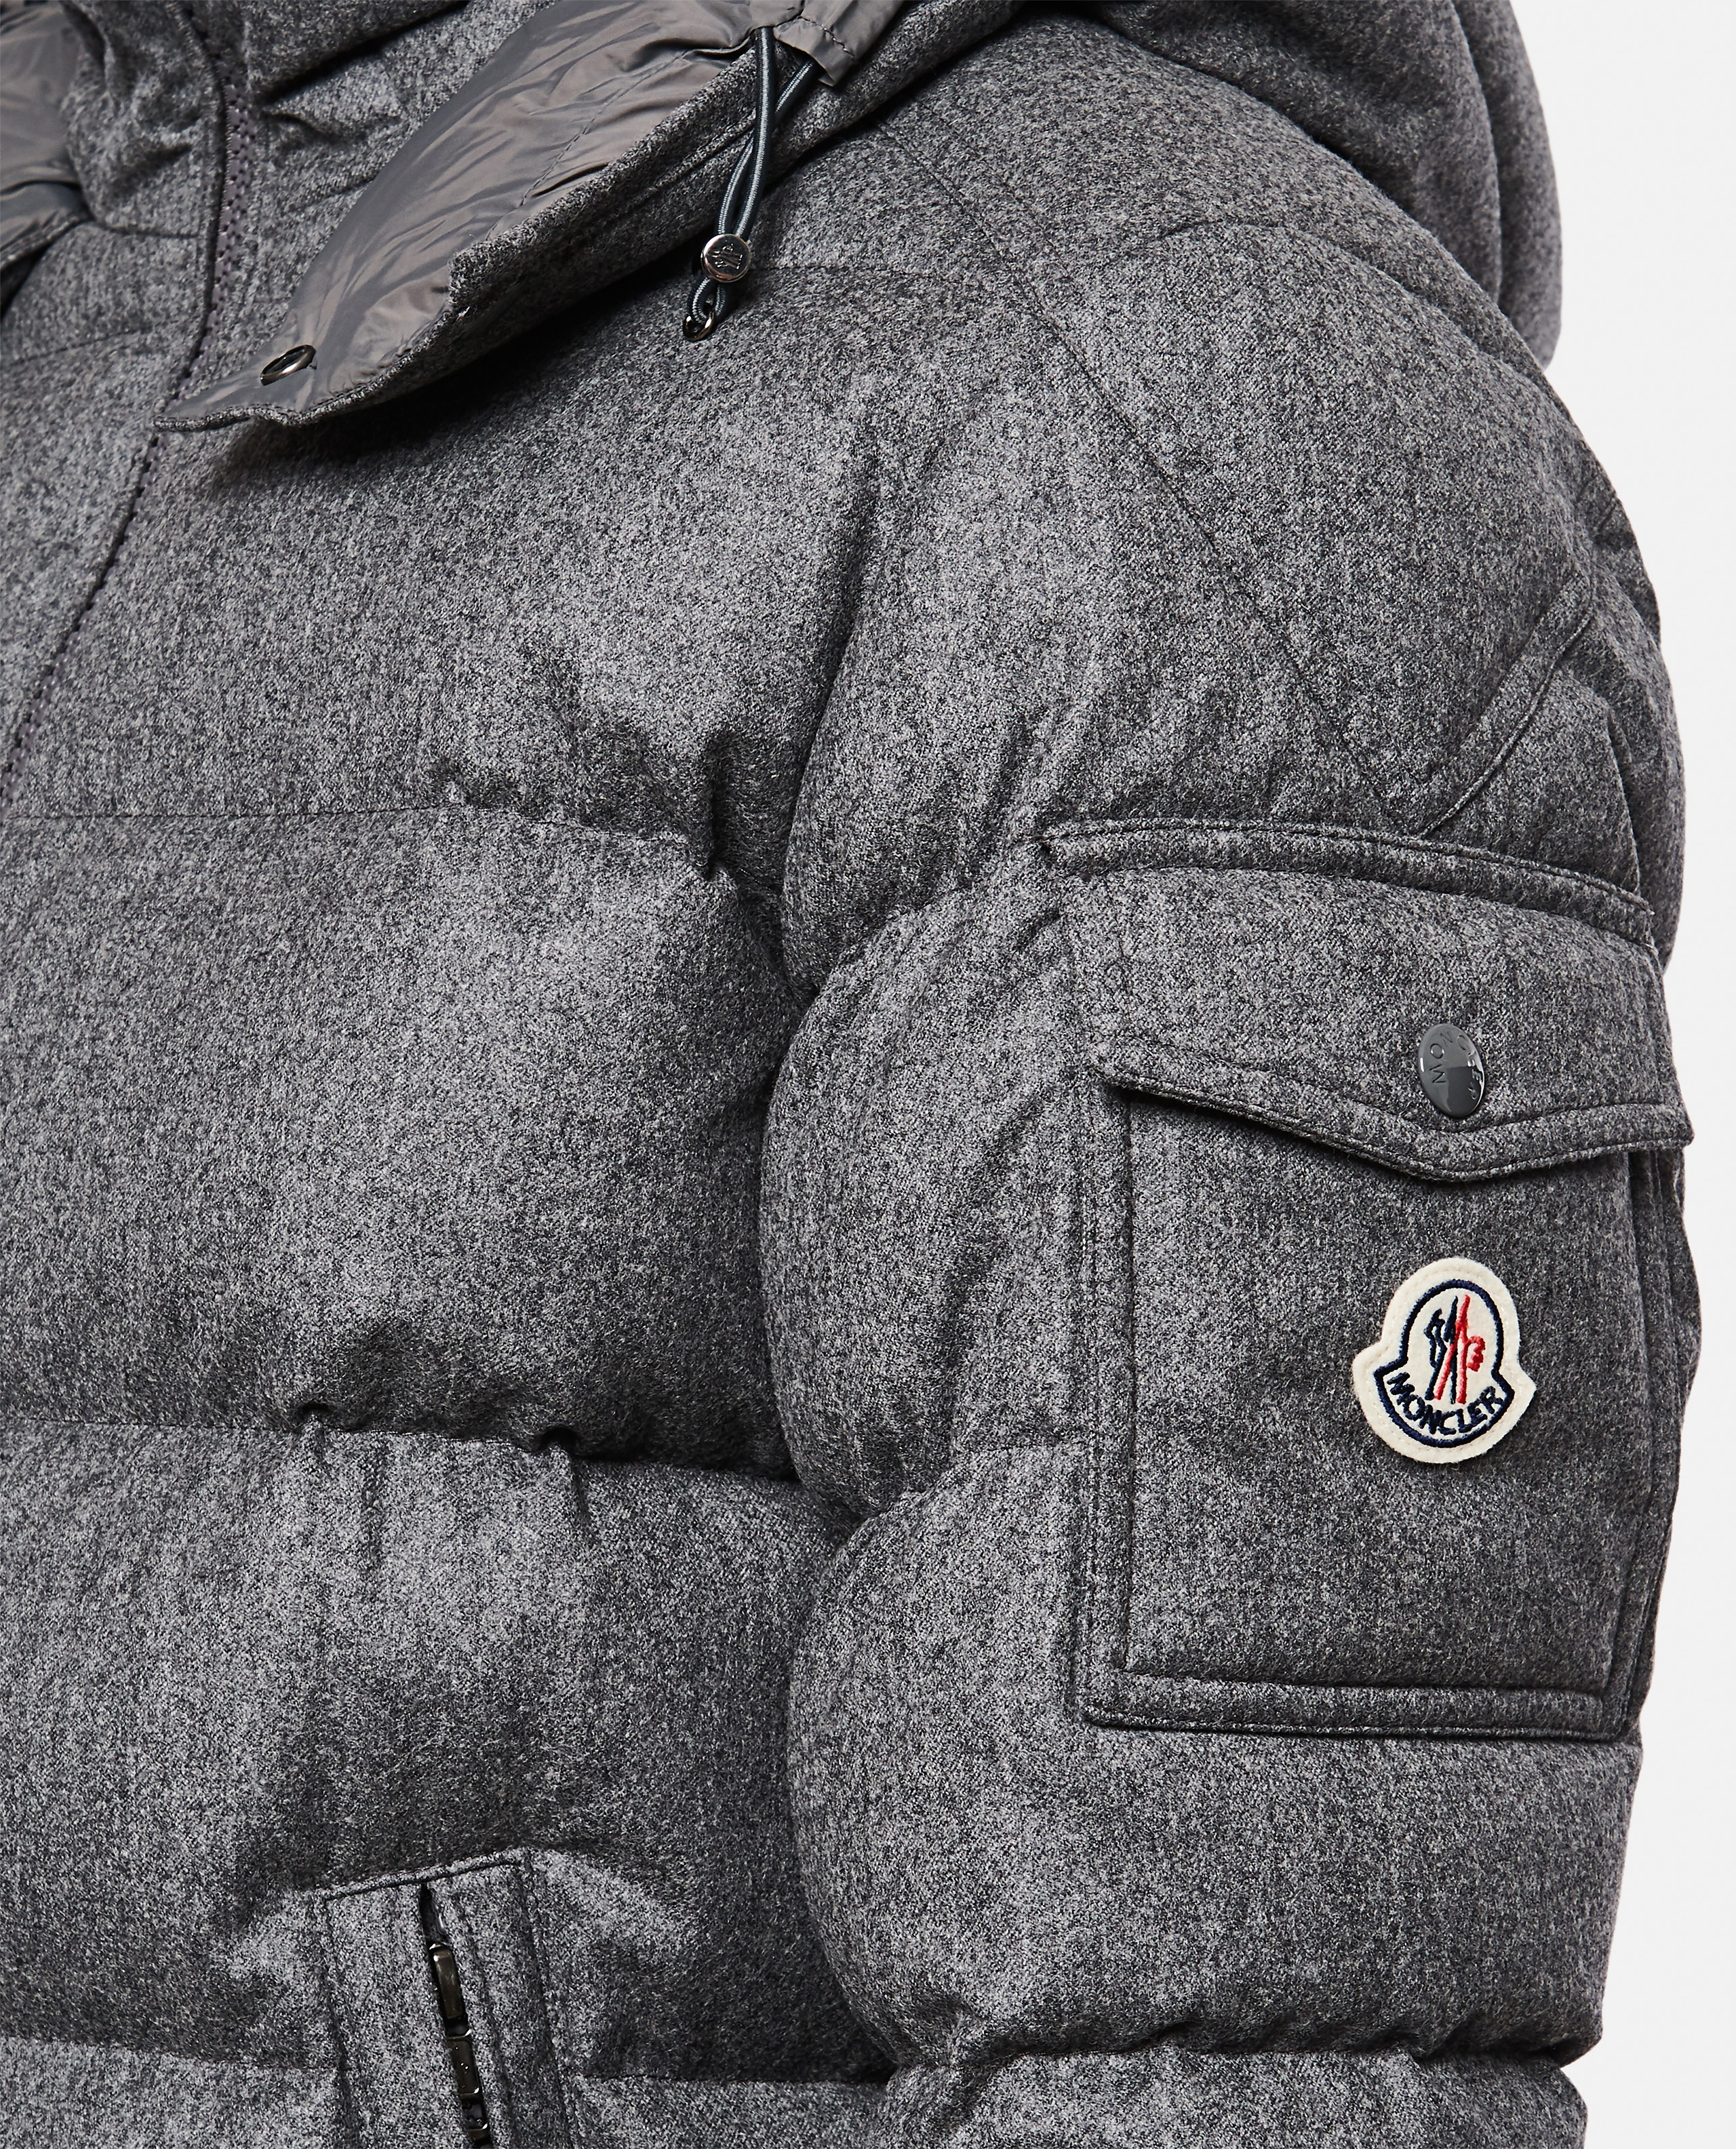 Down jacket with application Men Moncler 000271310039971 4